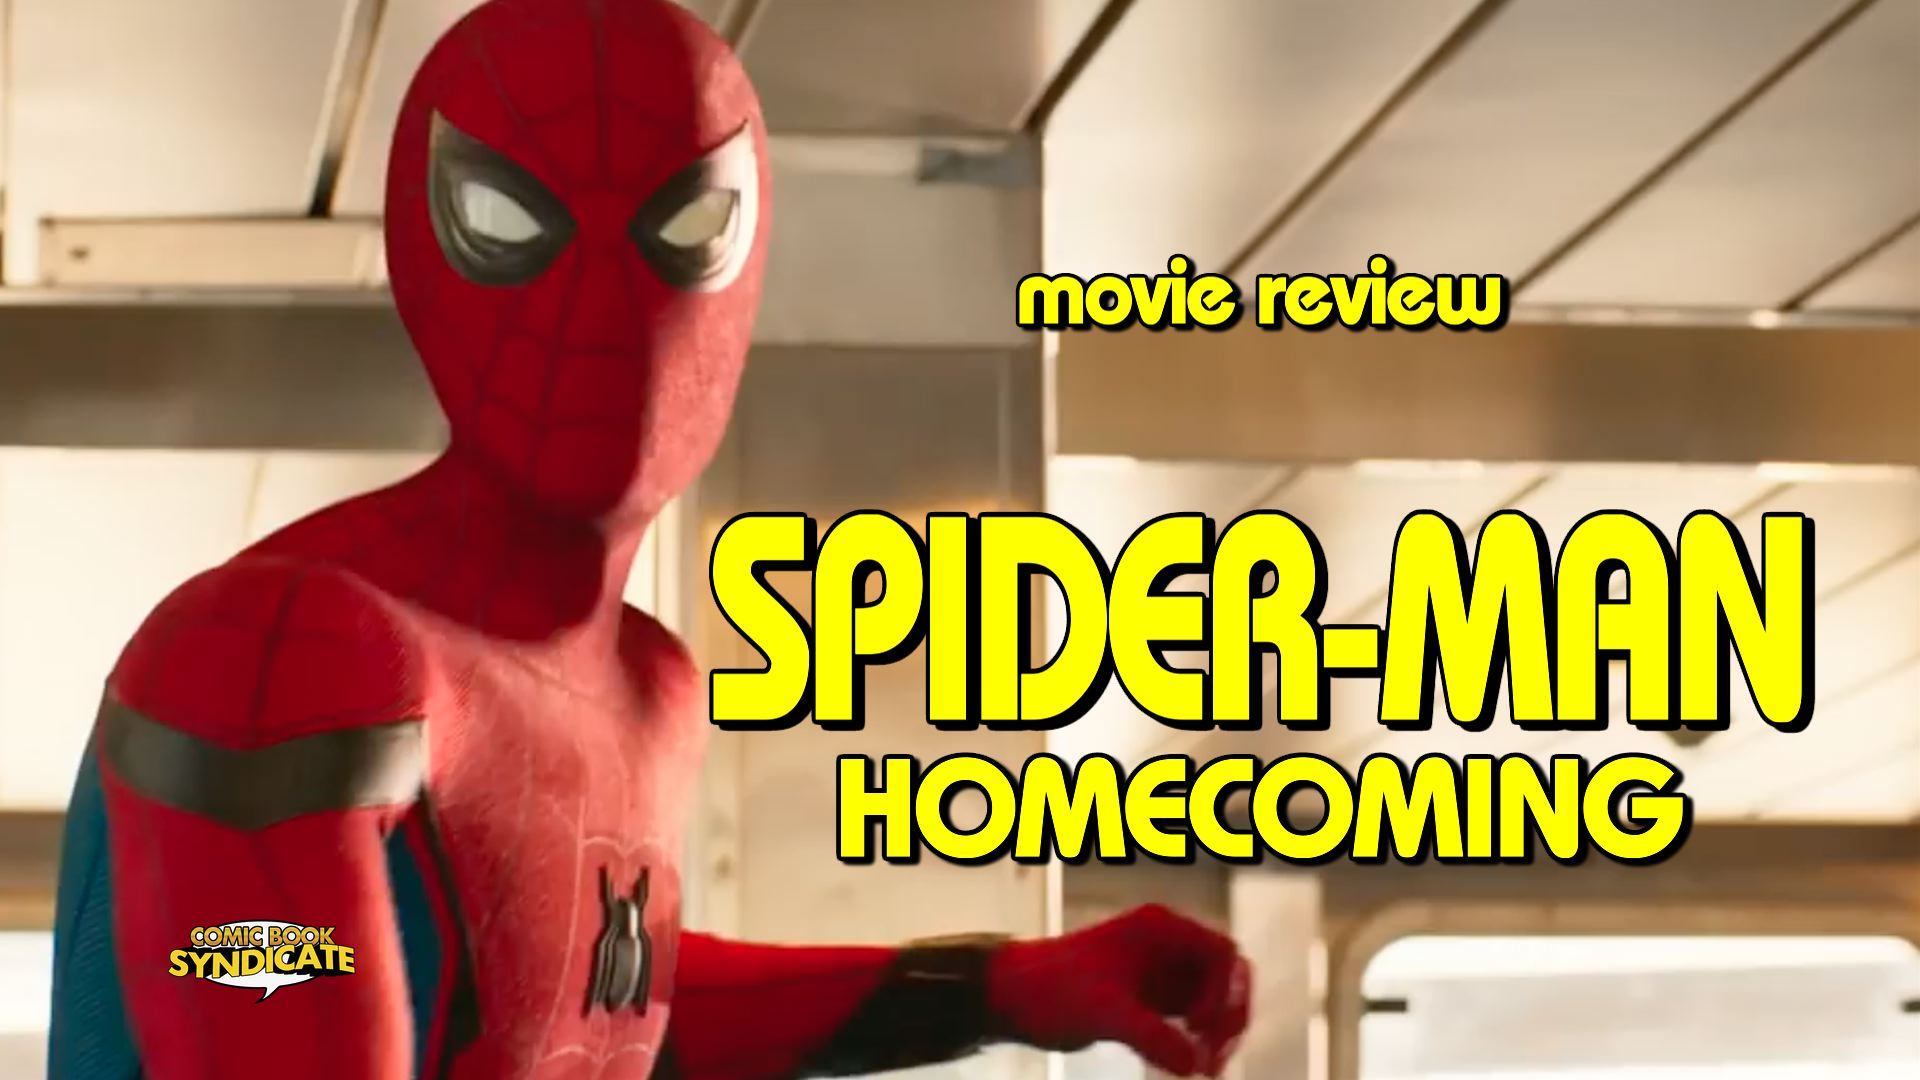 Spider-man: Homecoming (movie review)